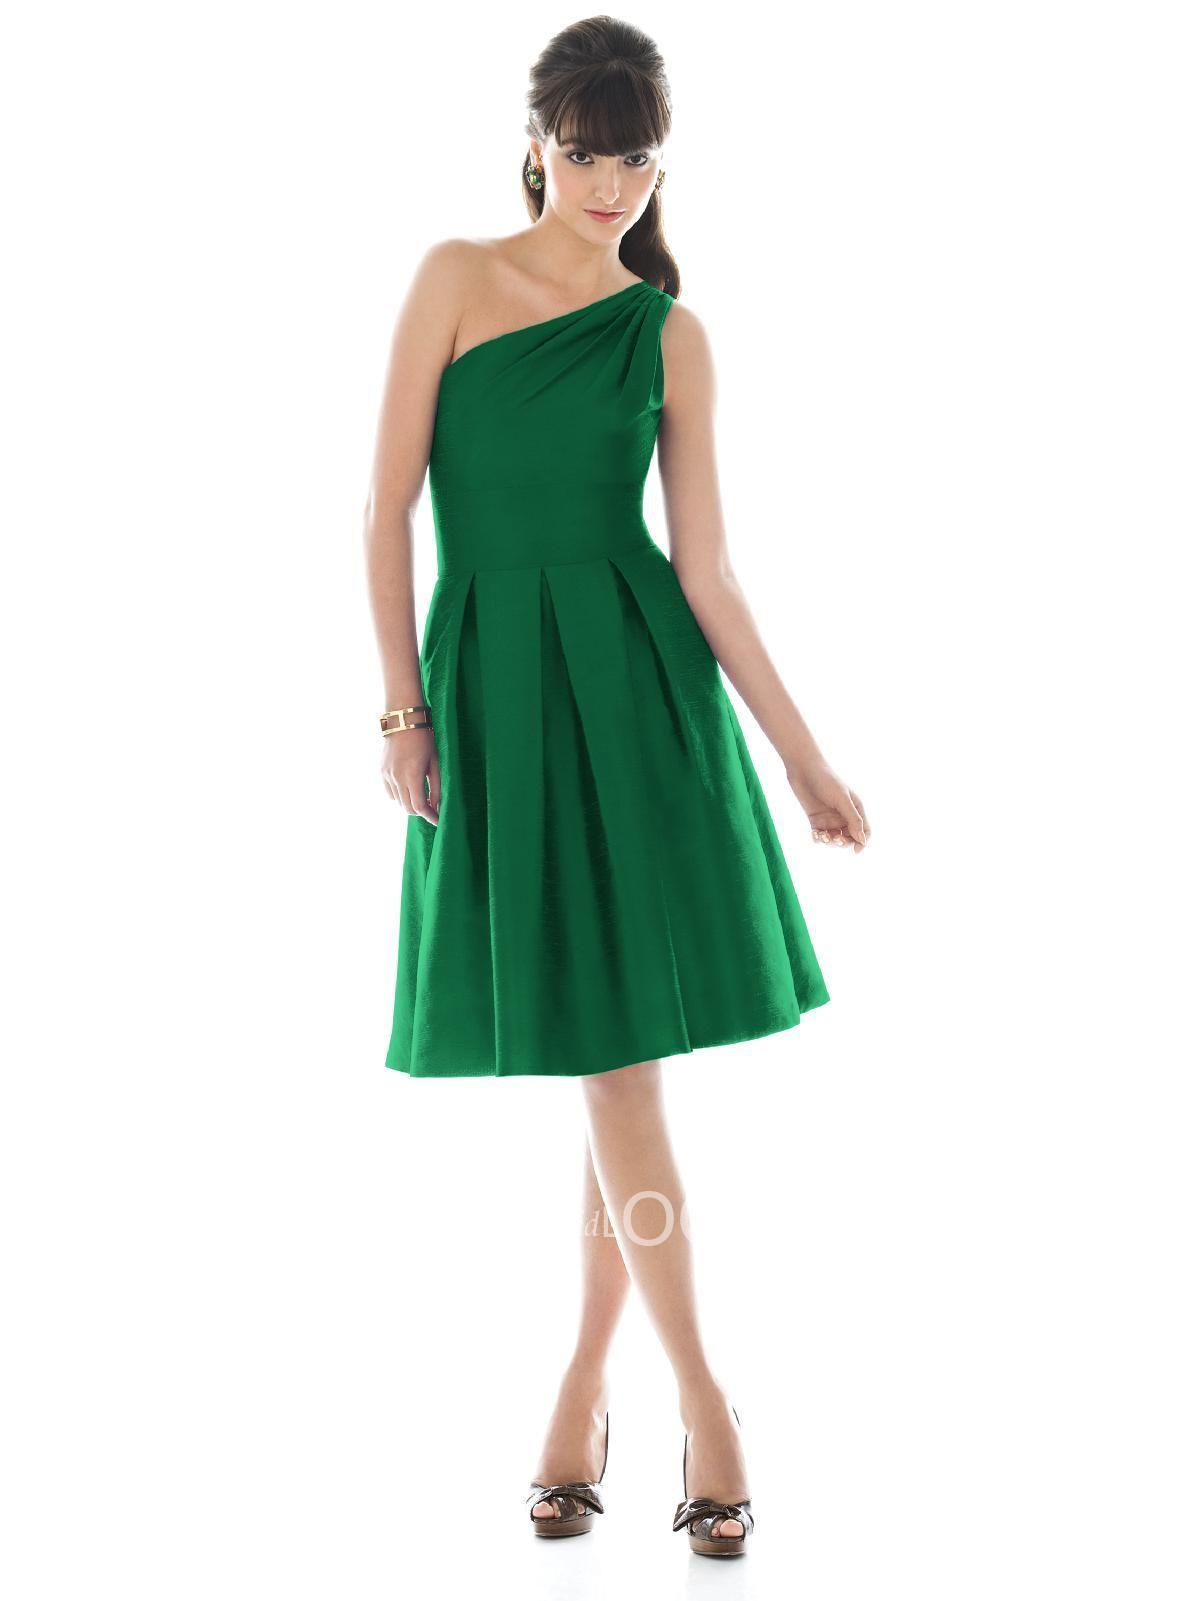 pine green one shoulder bridesmaid dress a-line skirt. Just ...